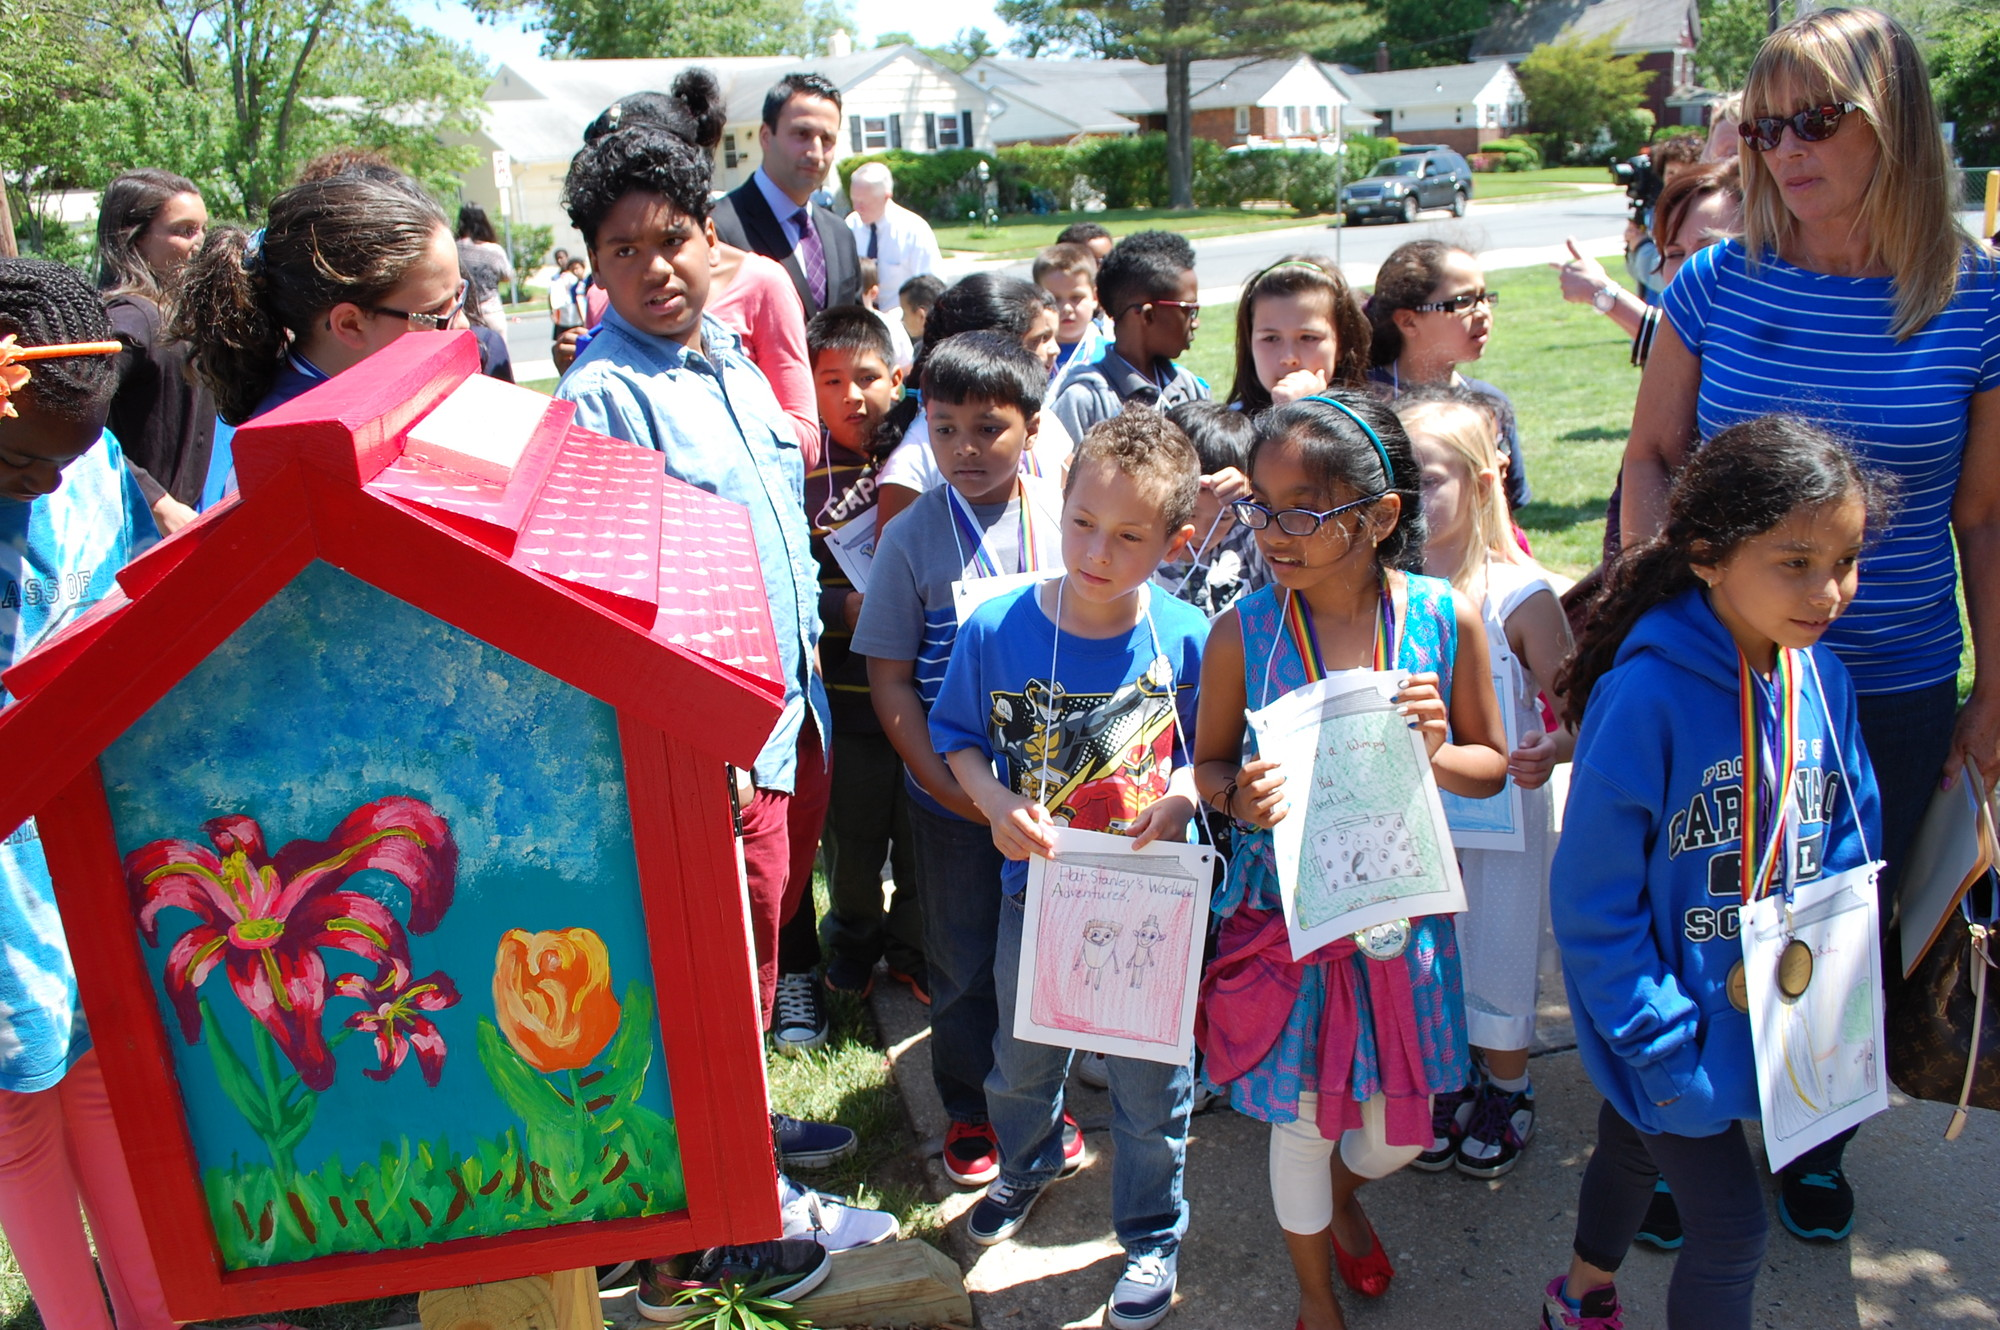 Carbonaro School students, after marching in a character parade, got to see the Little Free Library at its permanent home alongside the front walkway.